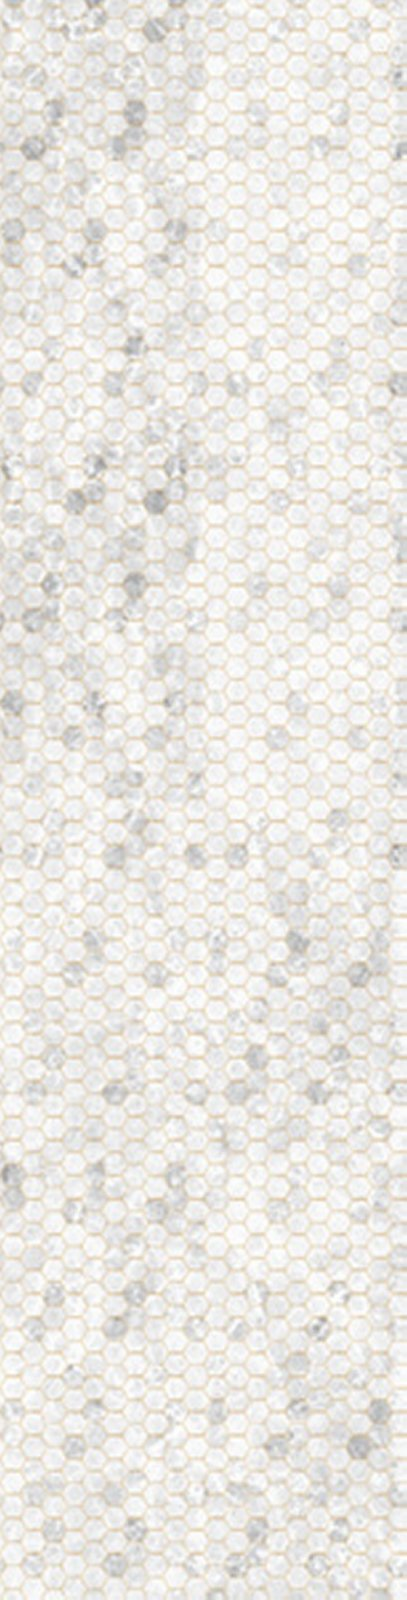 Backsplash - Gray - By Hoffman Fabrics